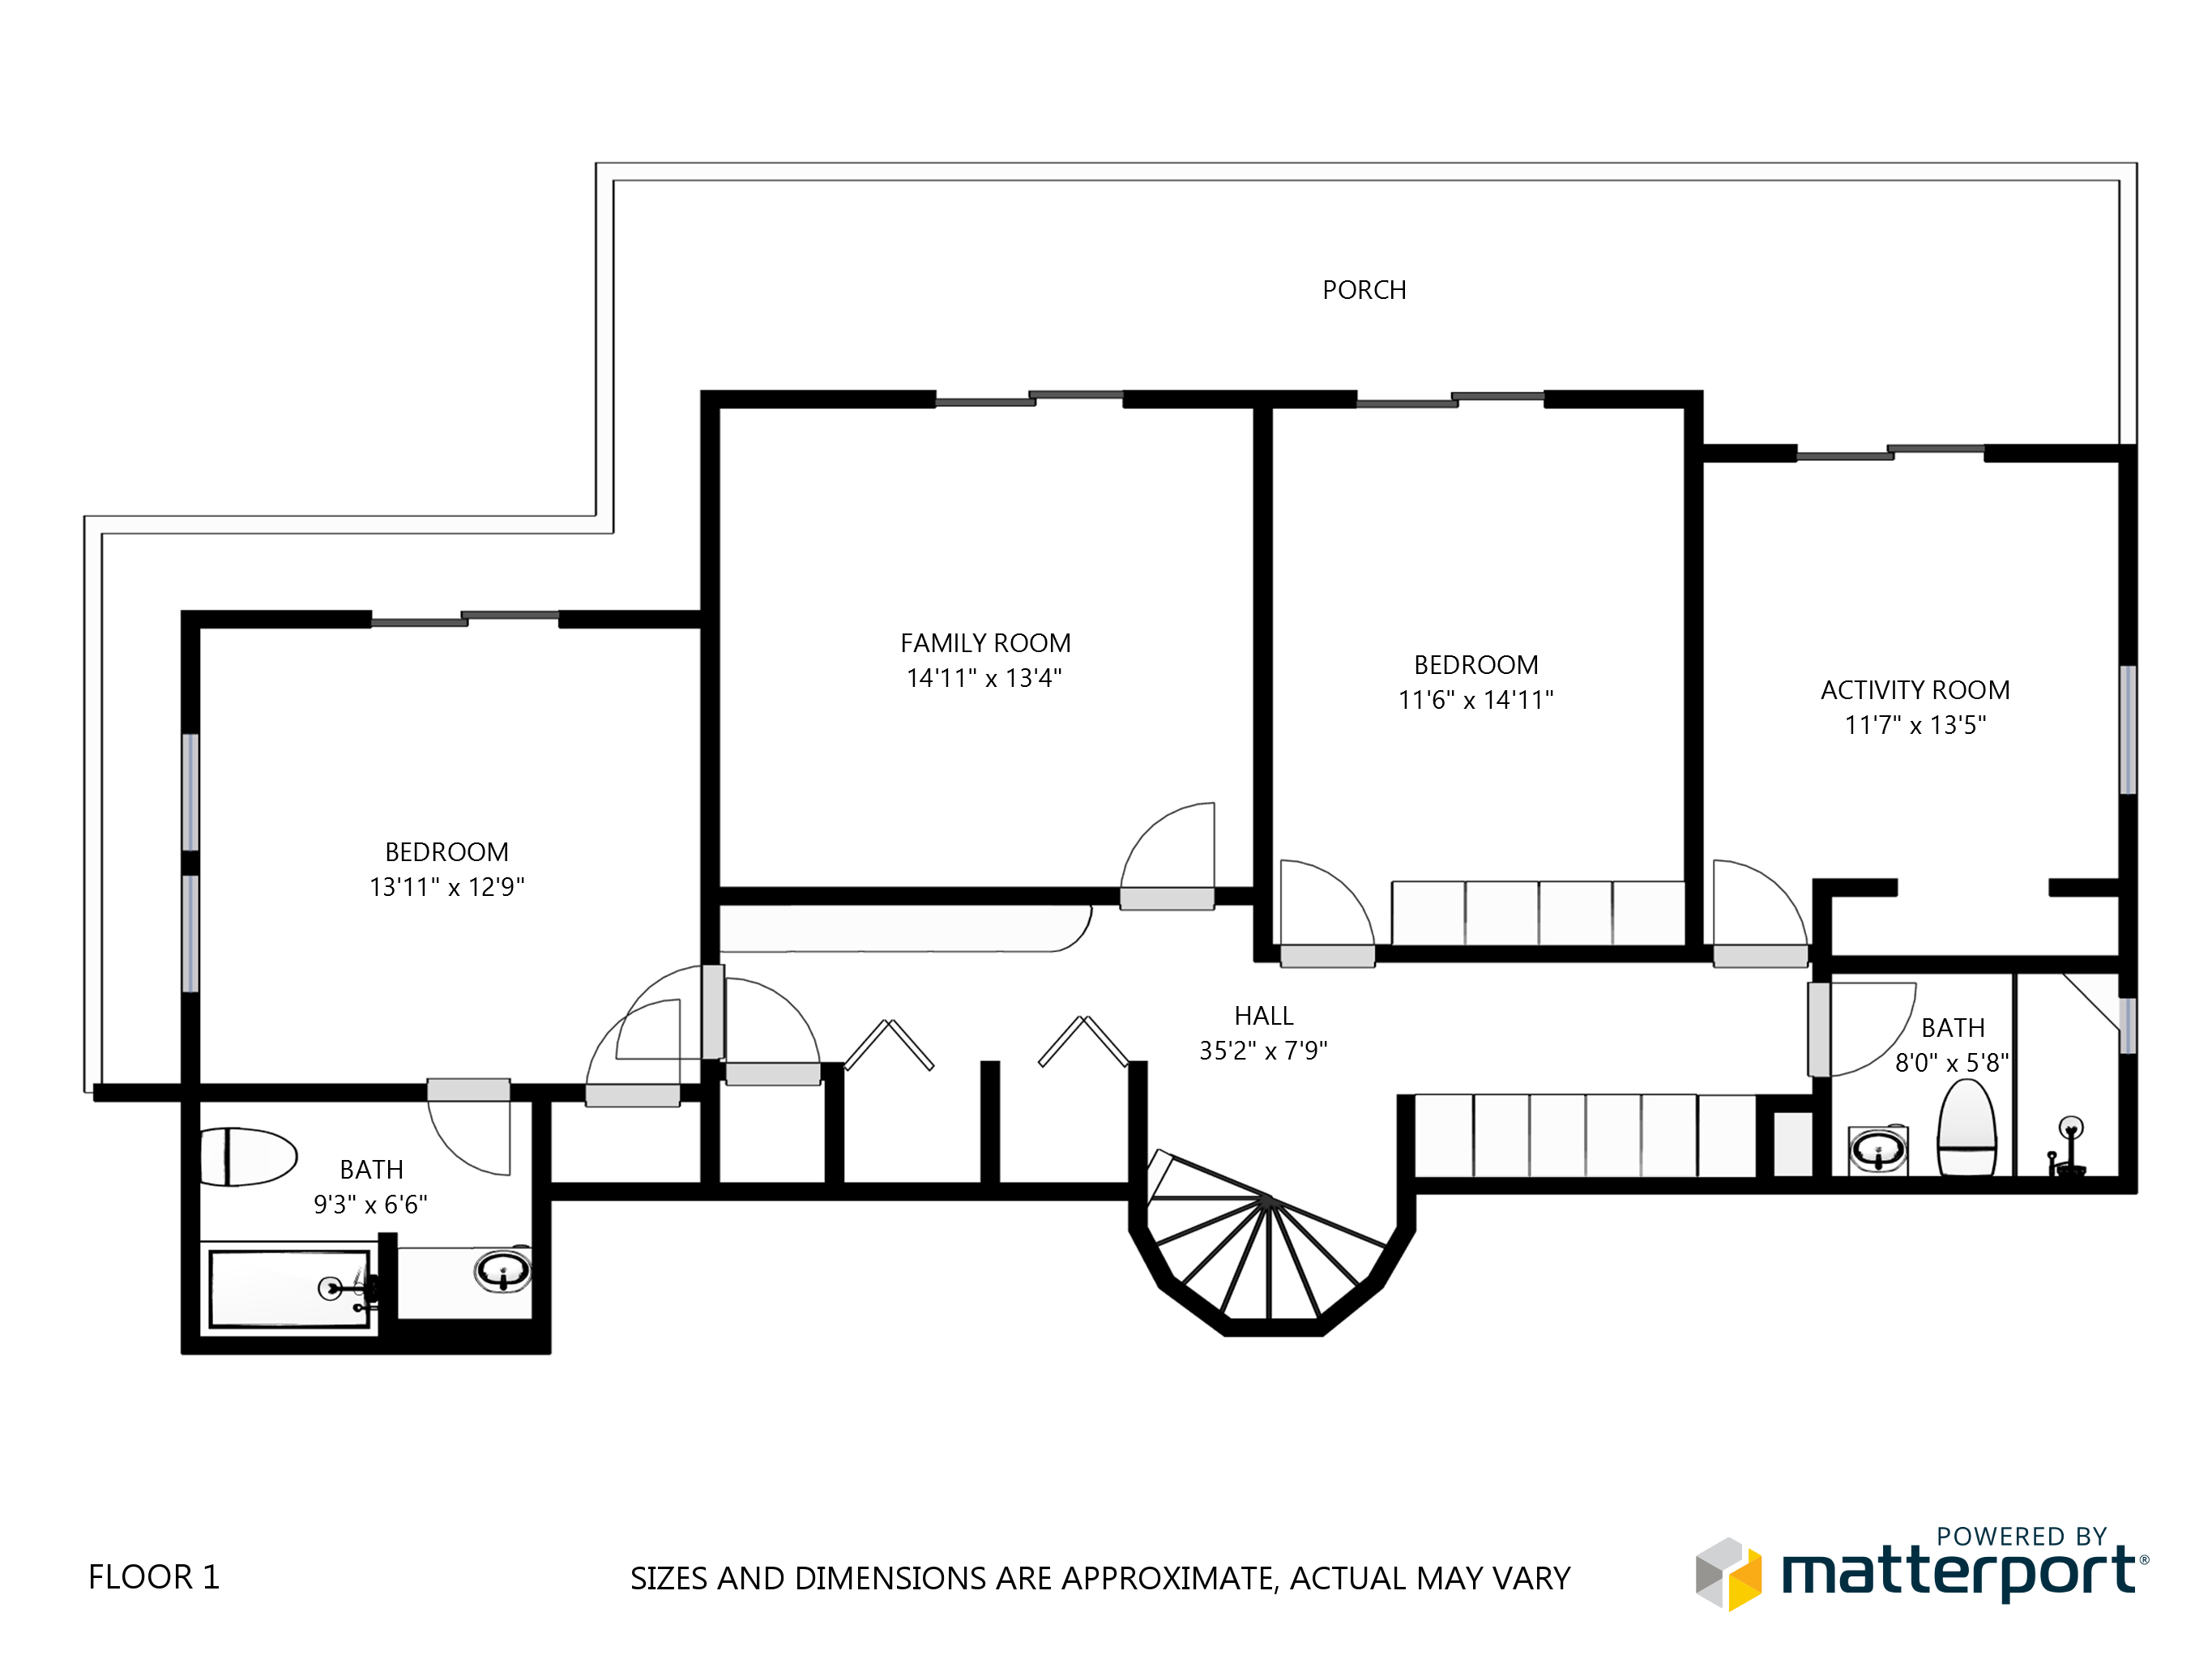 Fernhill Schematic Floor Plan - Floor 1